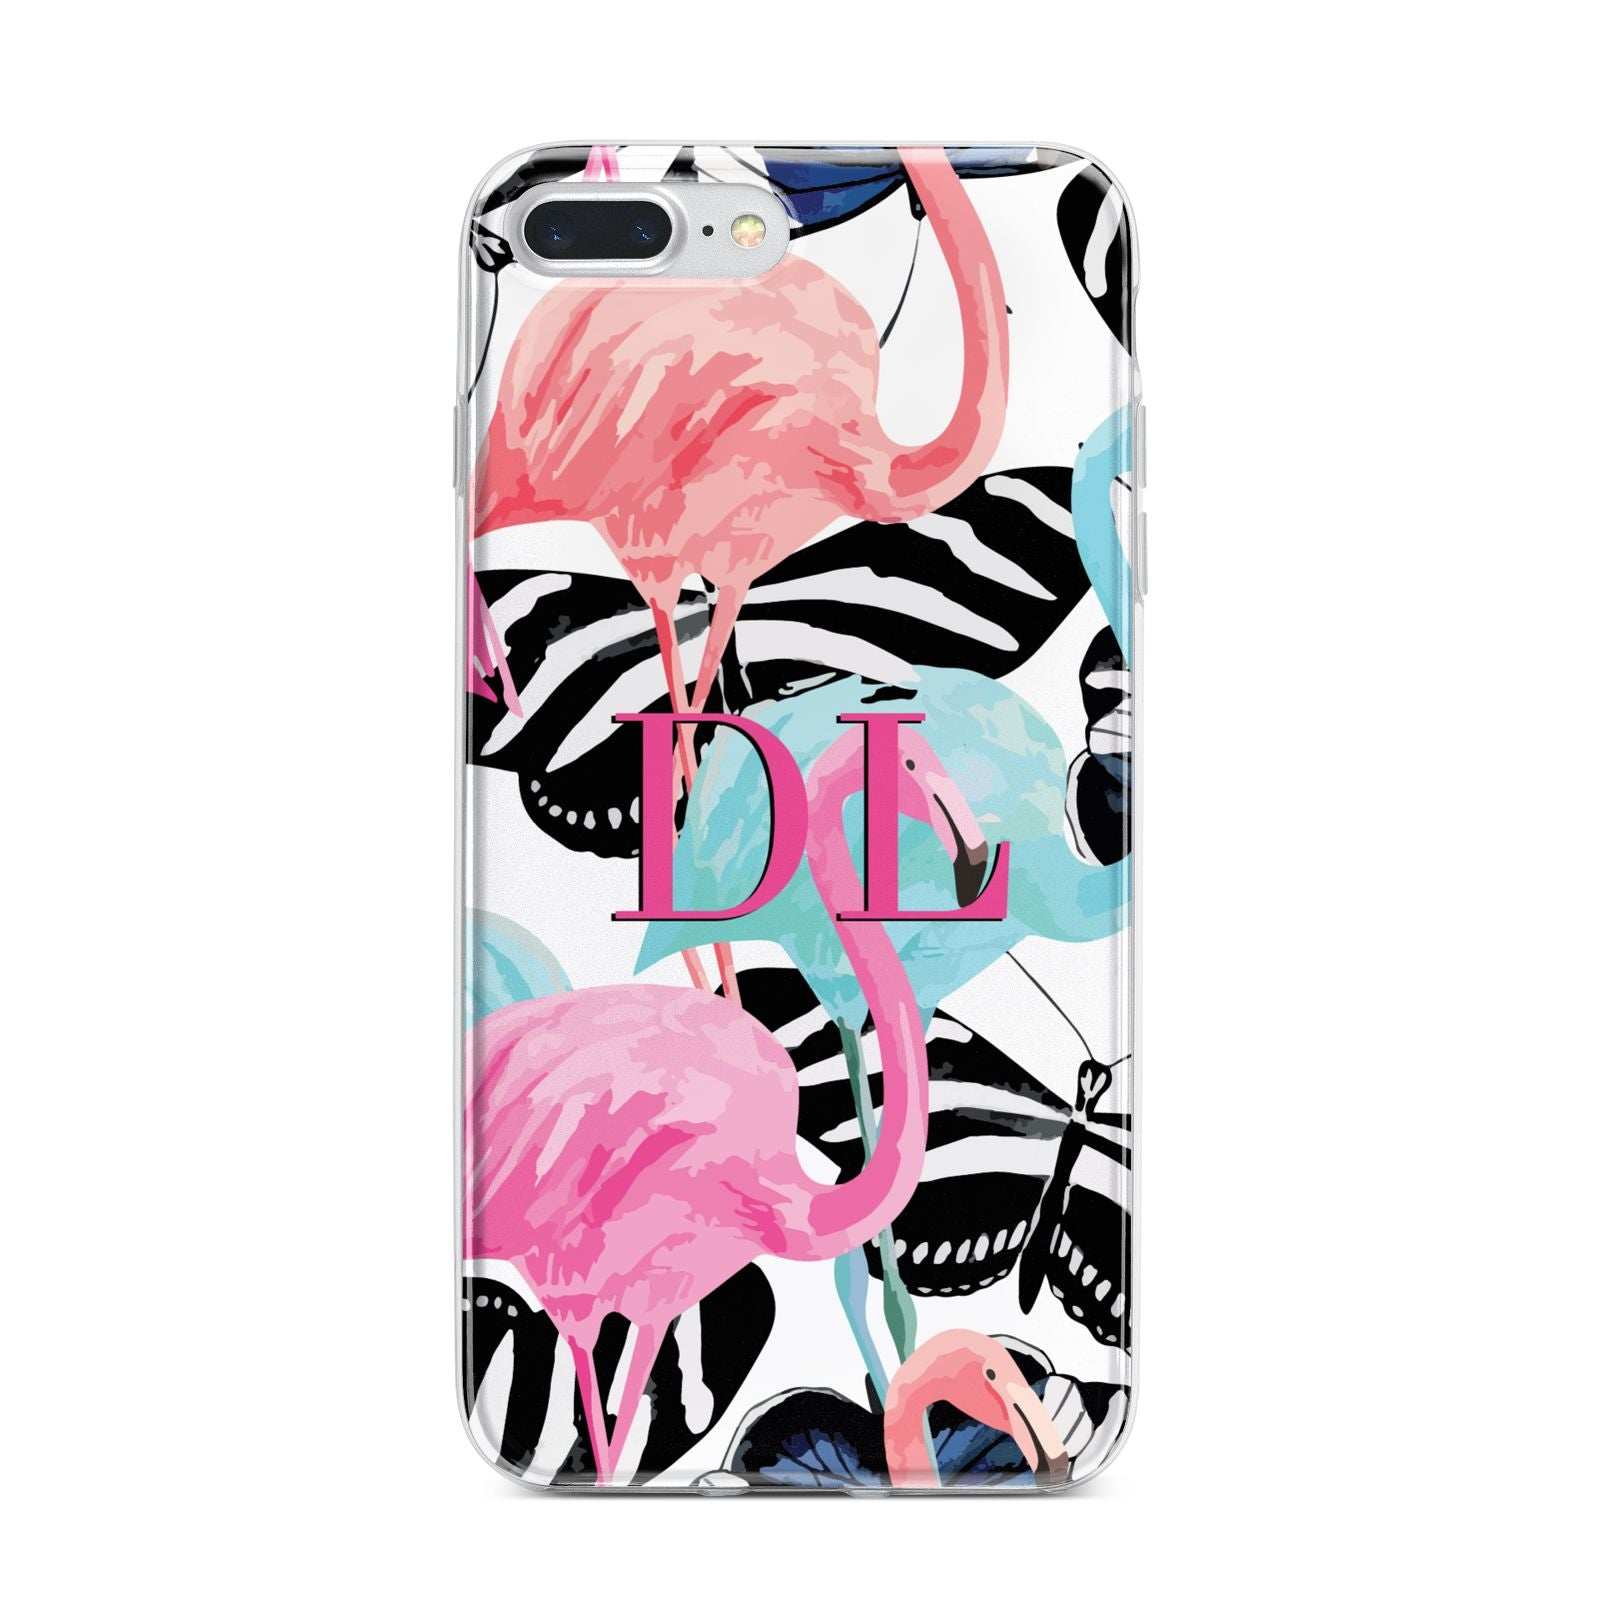 Butterflies Flamingos iPhone 7 Plus Bumper Case on Silver iPhone